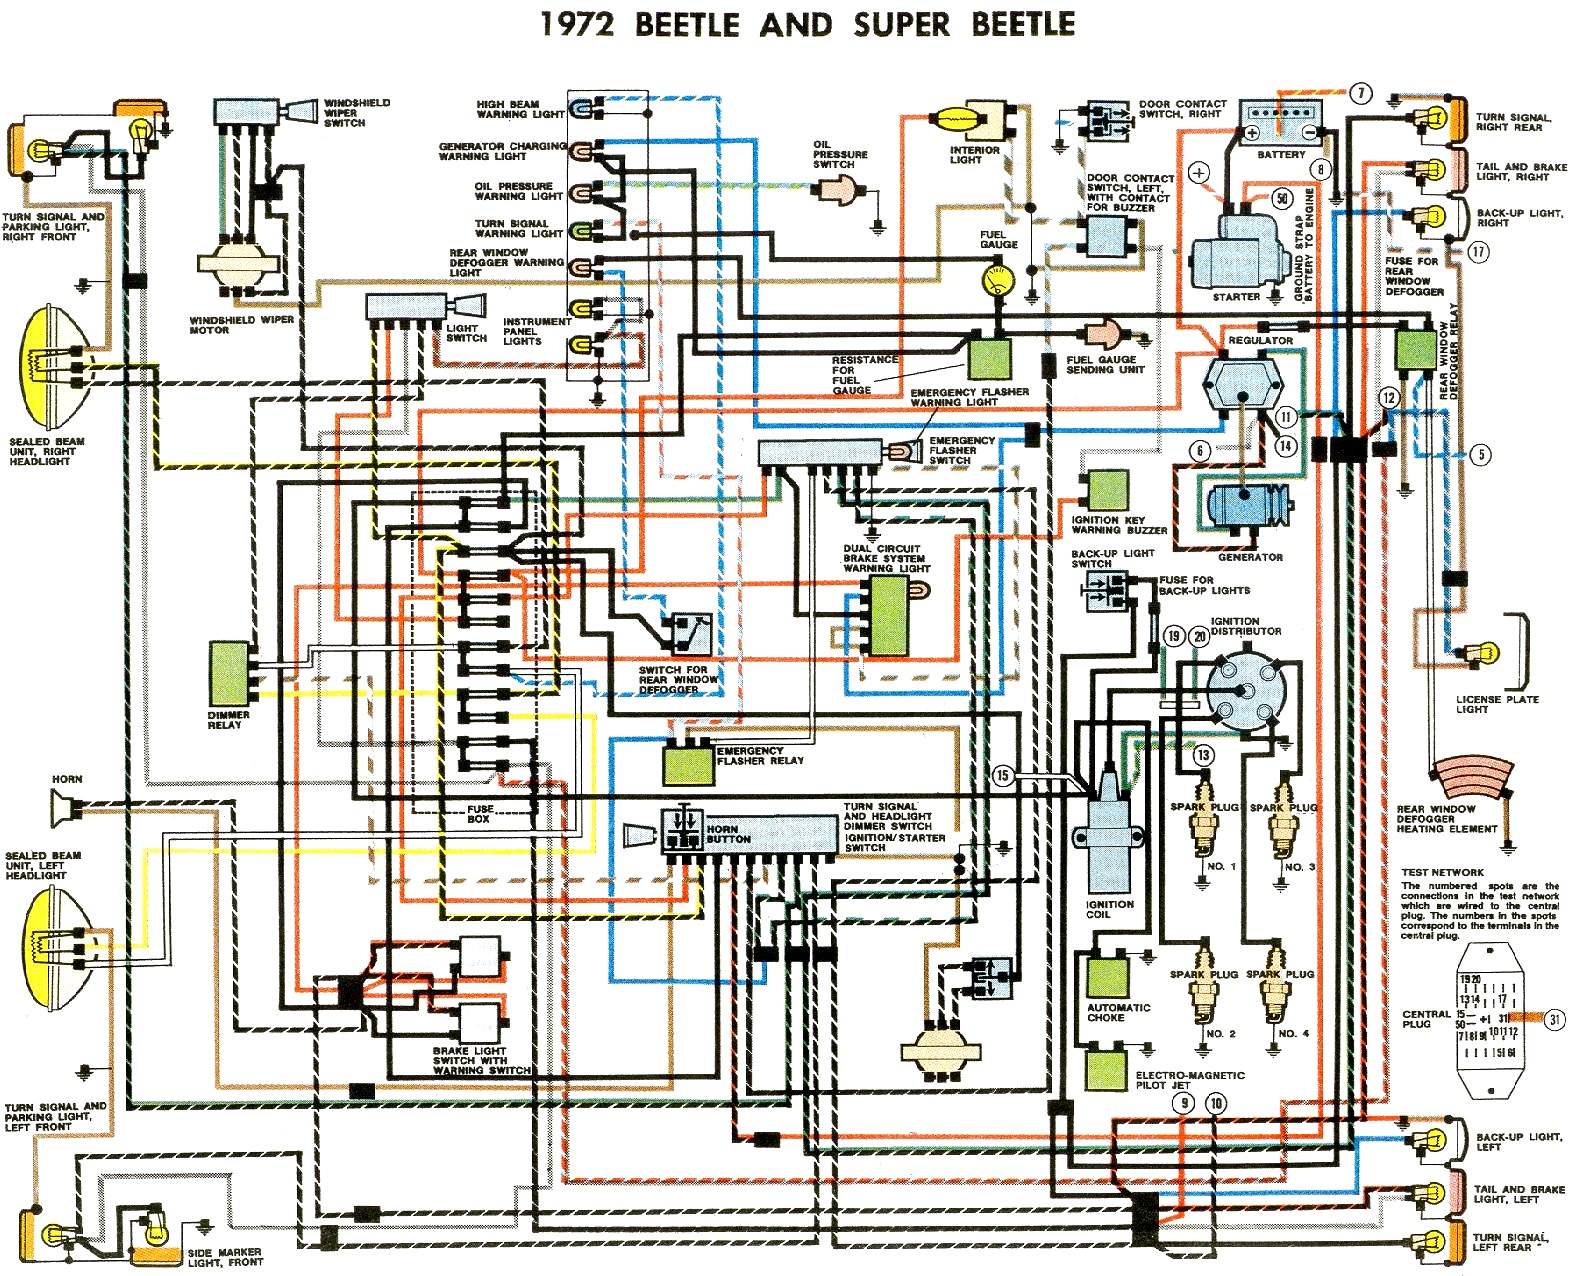 1972 vw beetle wiring diagram 1972 wiring diagrams online 1972 beetle wiring diagram thegoldenbug com